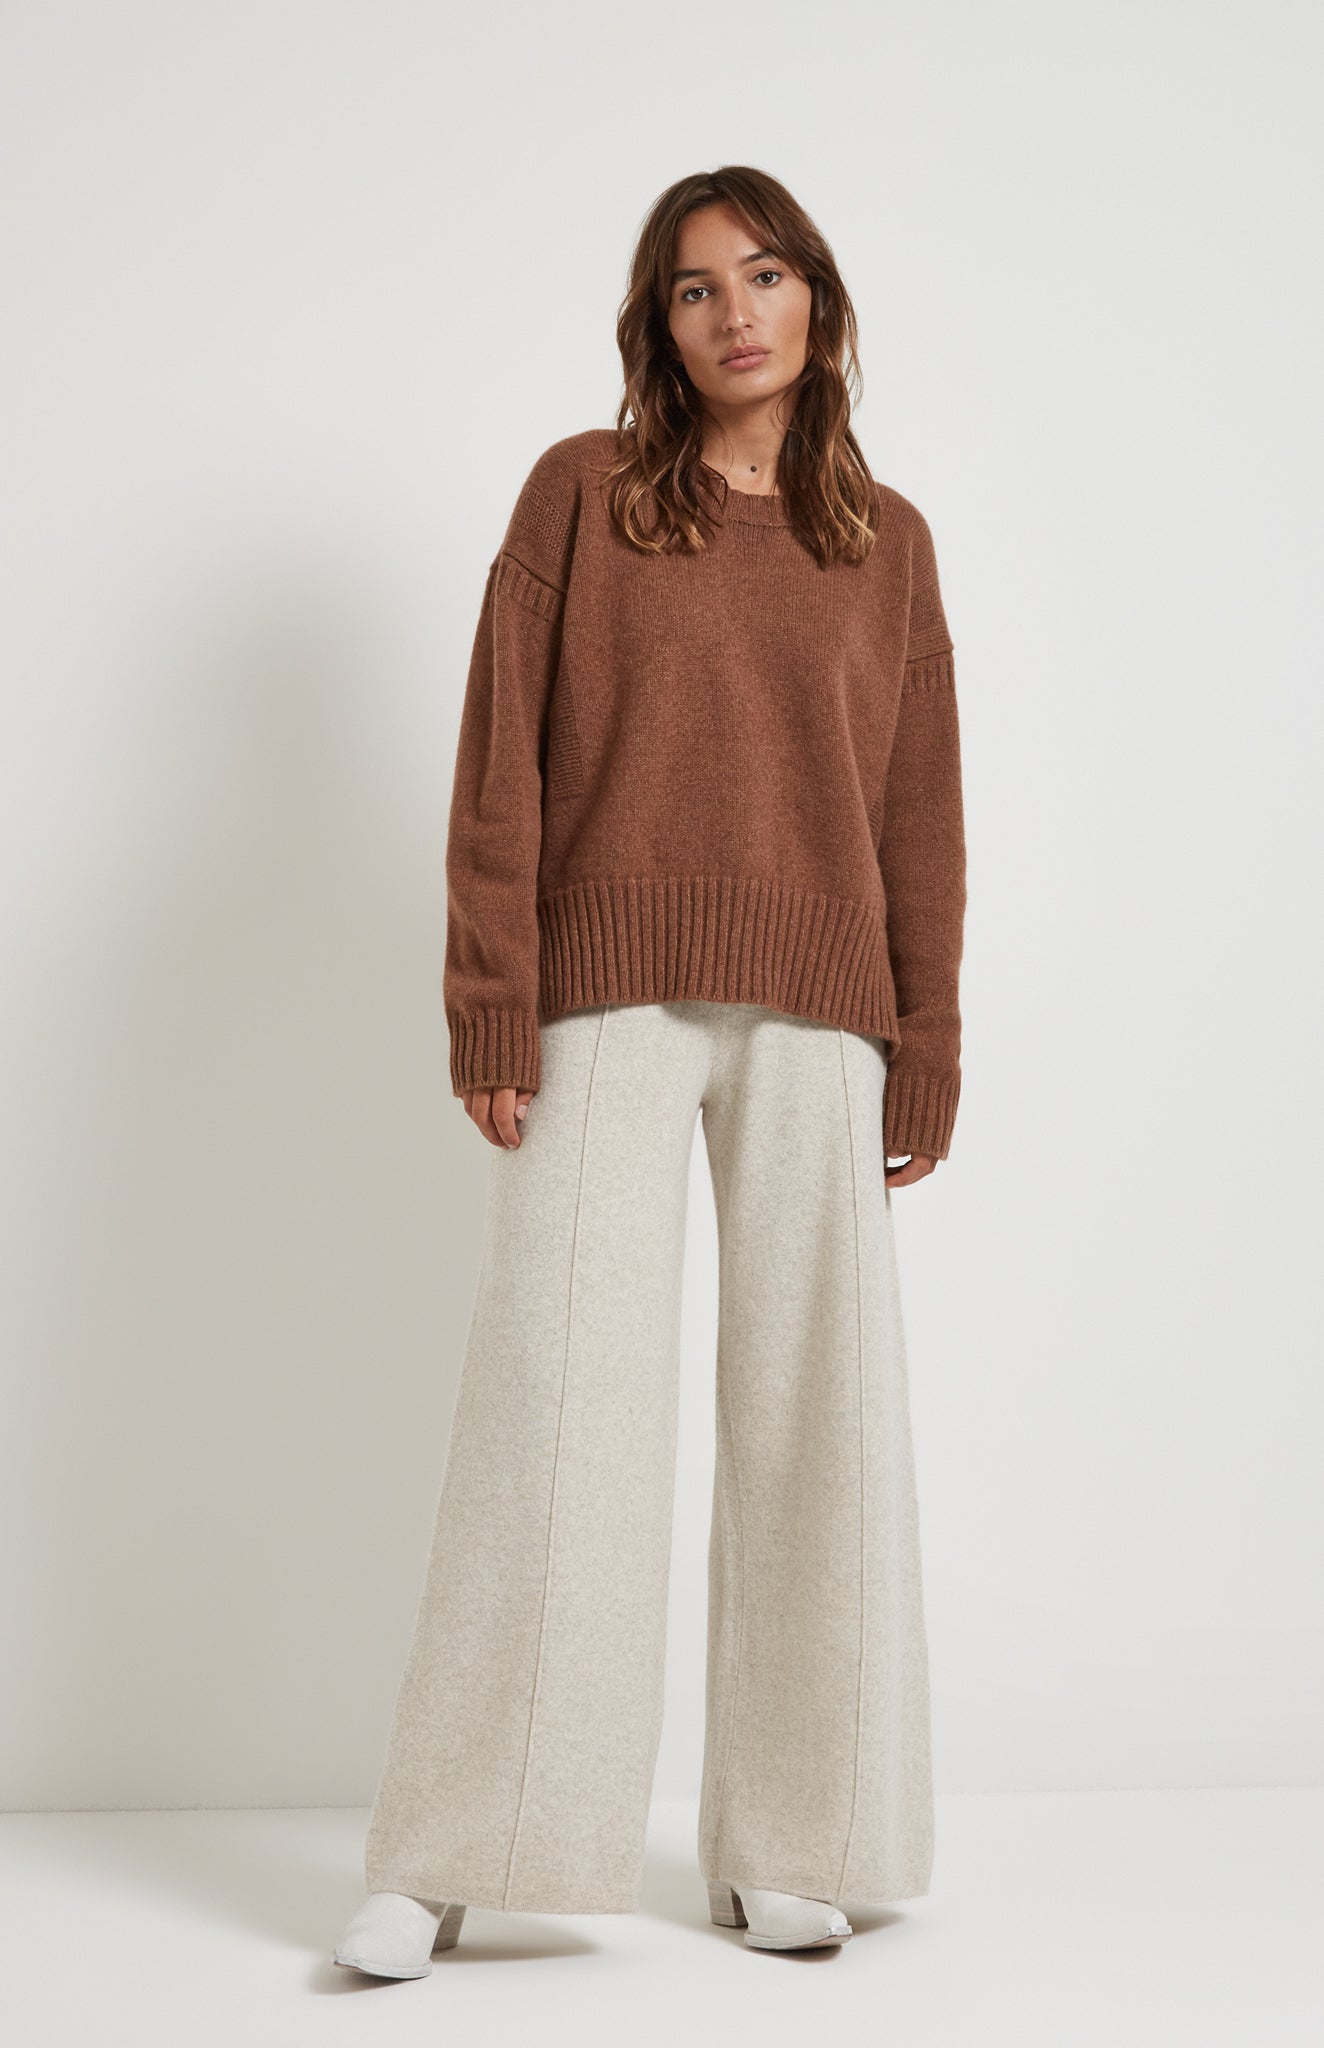 Guernsey Stitch Round Neck Jumper in Hazelnut